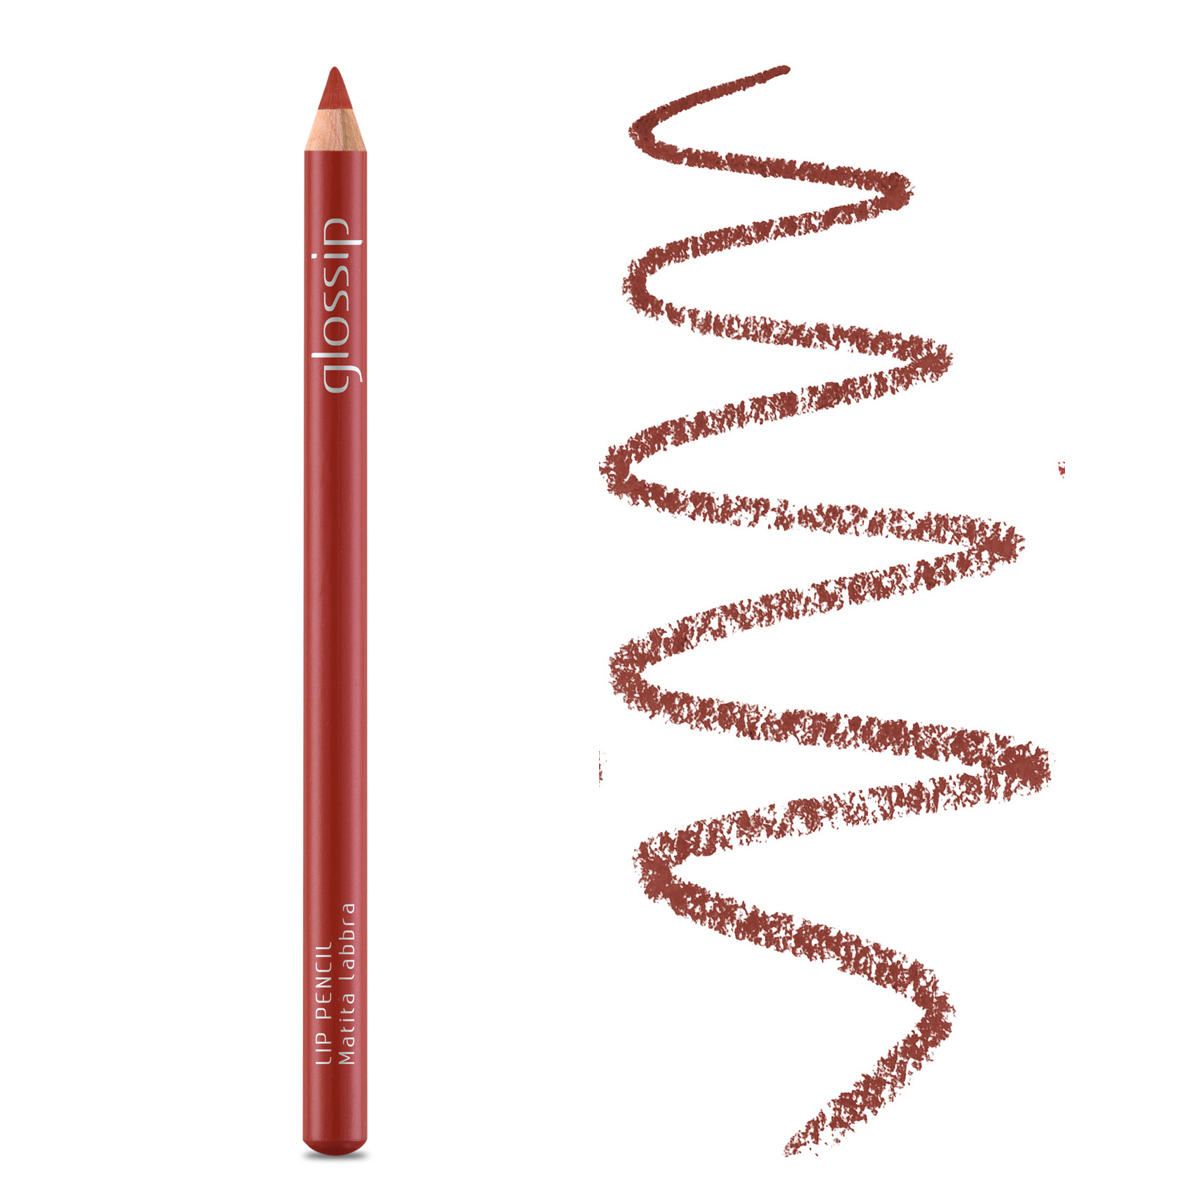 Lip Pencil - Creion De Buze